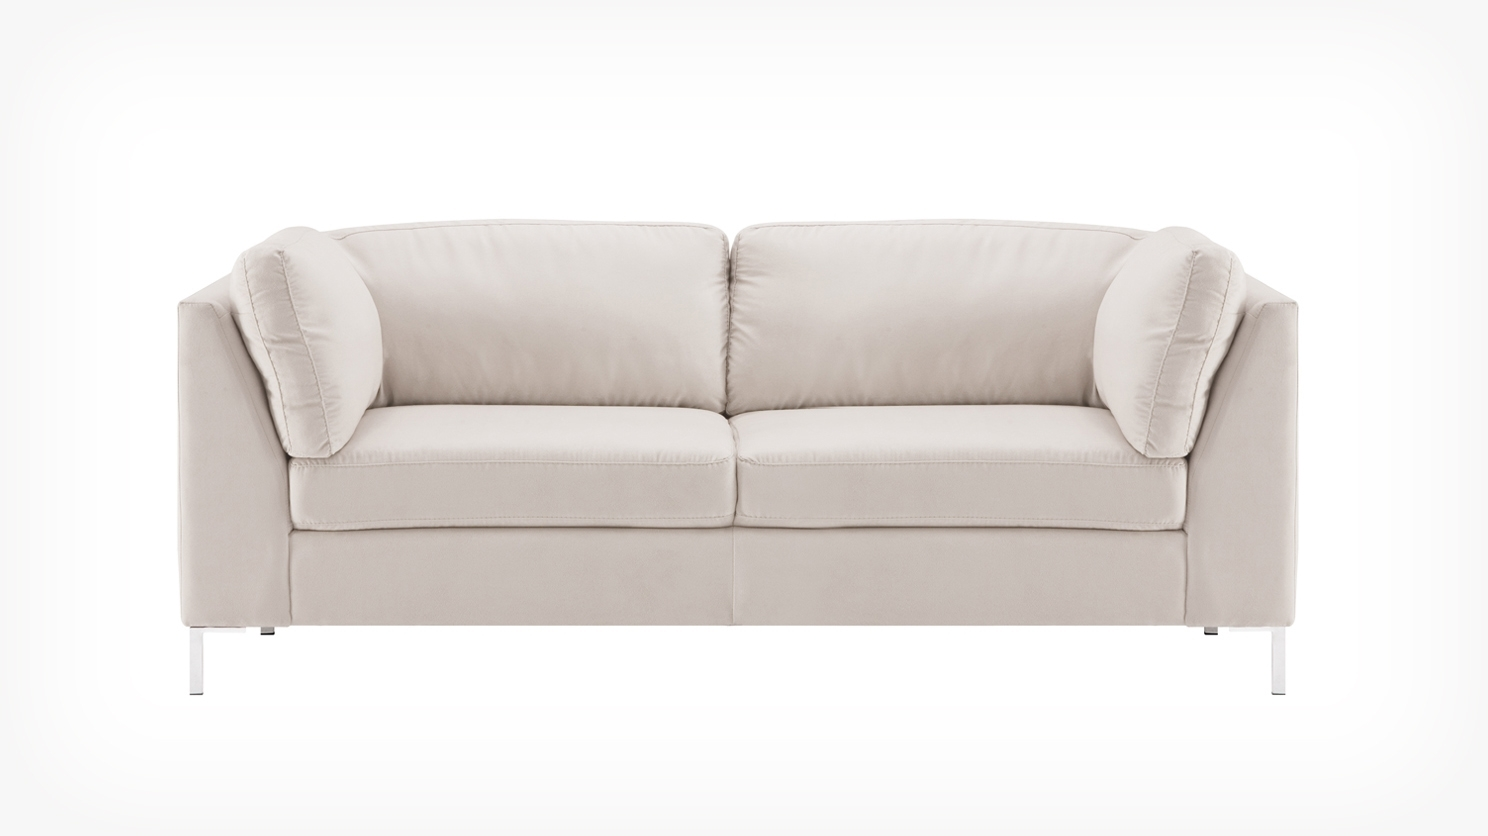 Eq3 | Salema Apartment Sofa - Fabric throughout Apartment Sofas (Image 8 of 10)